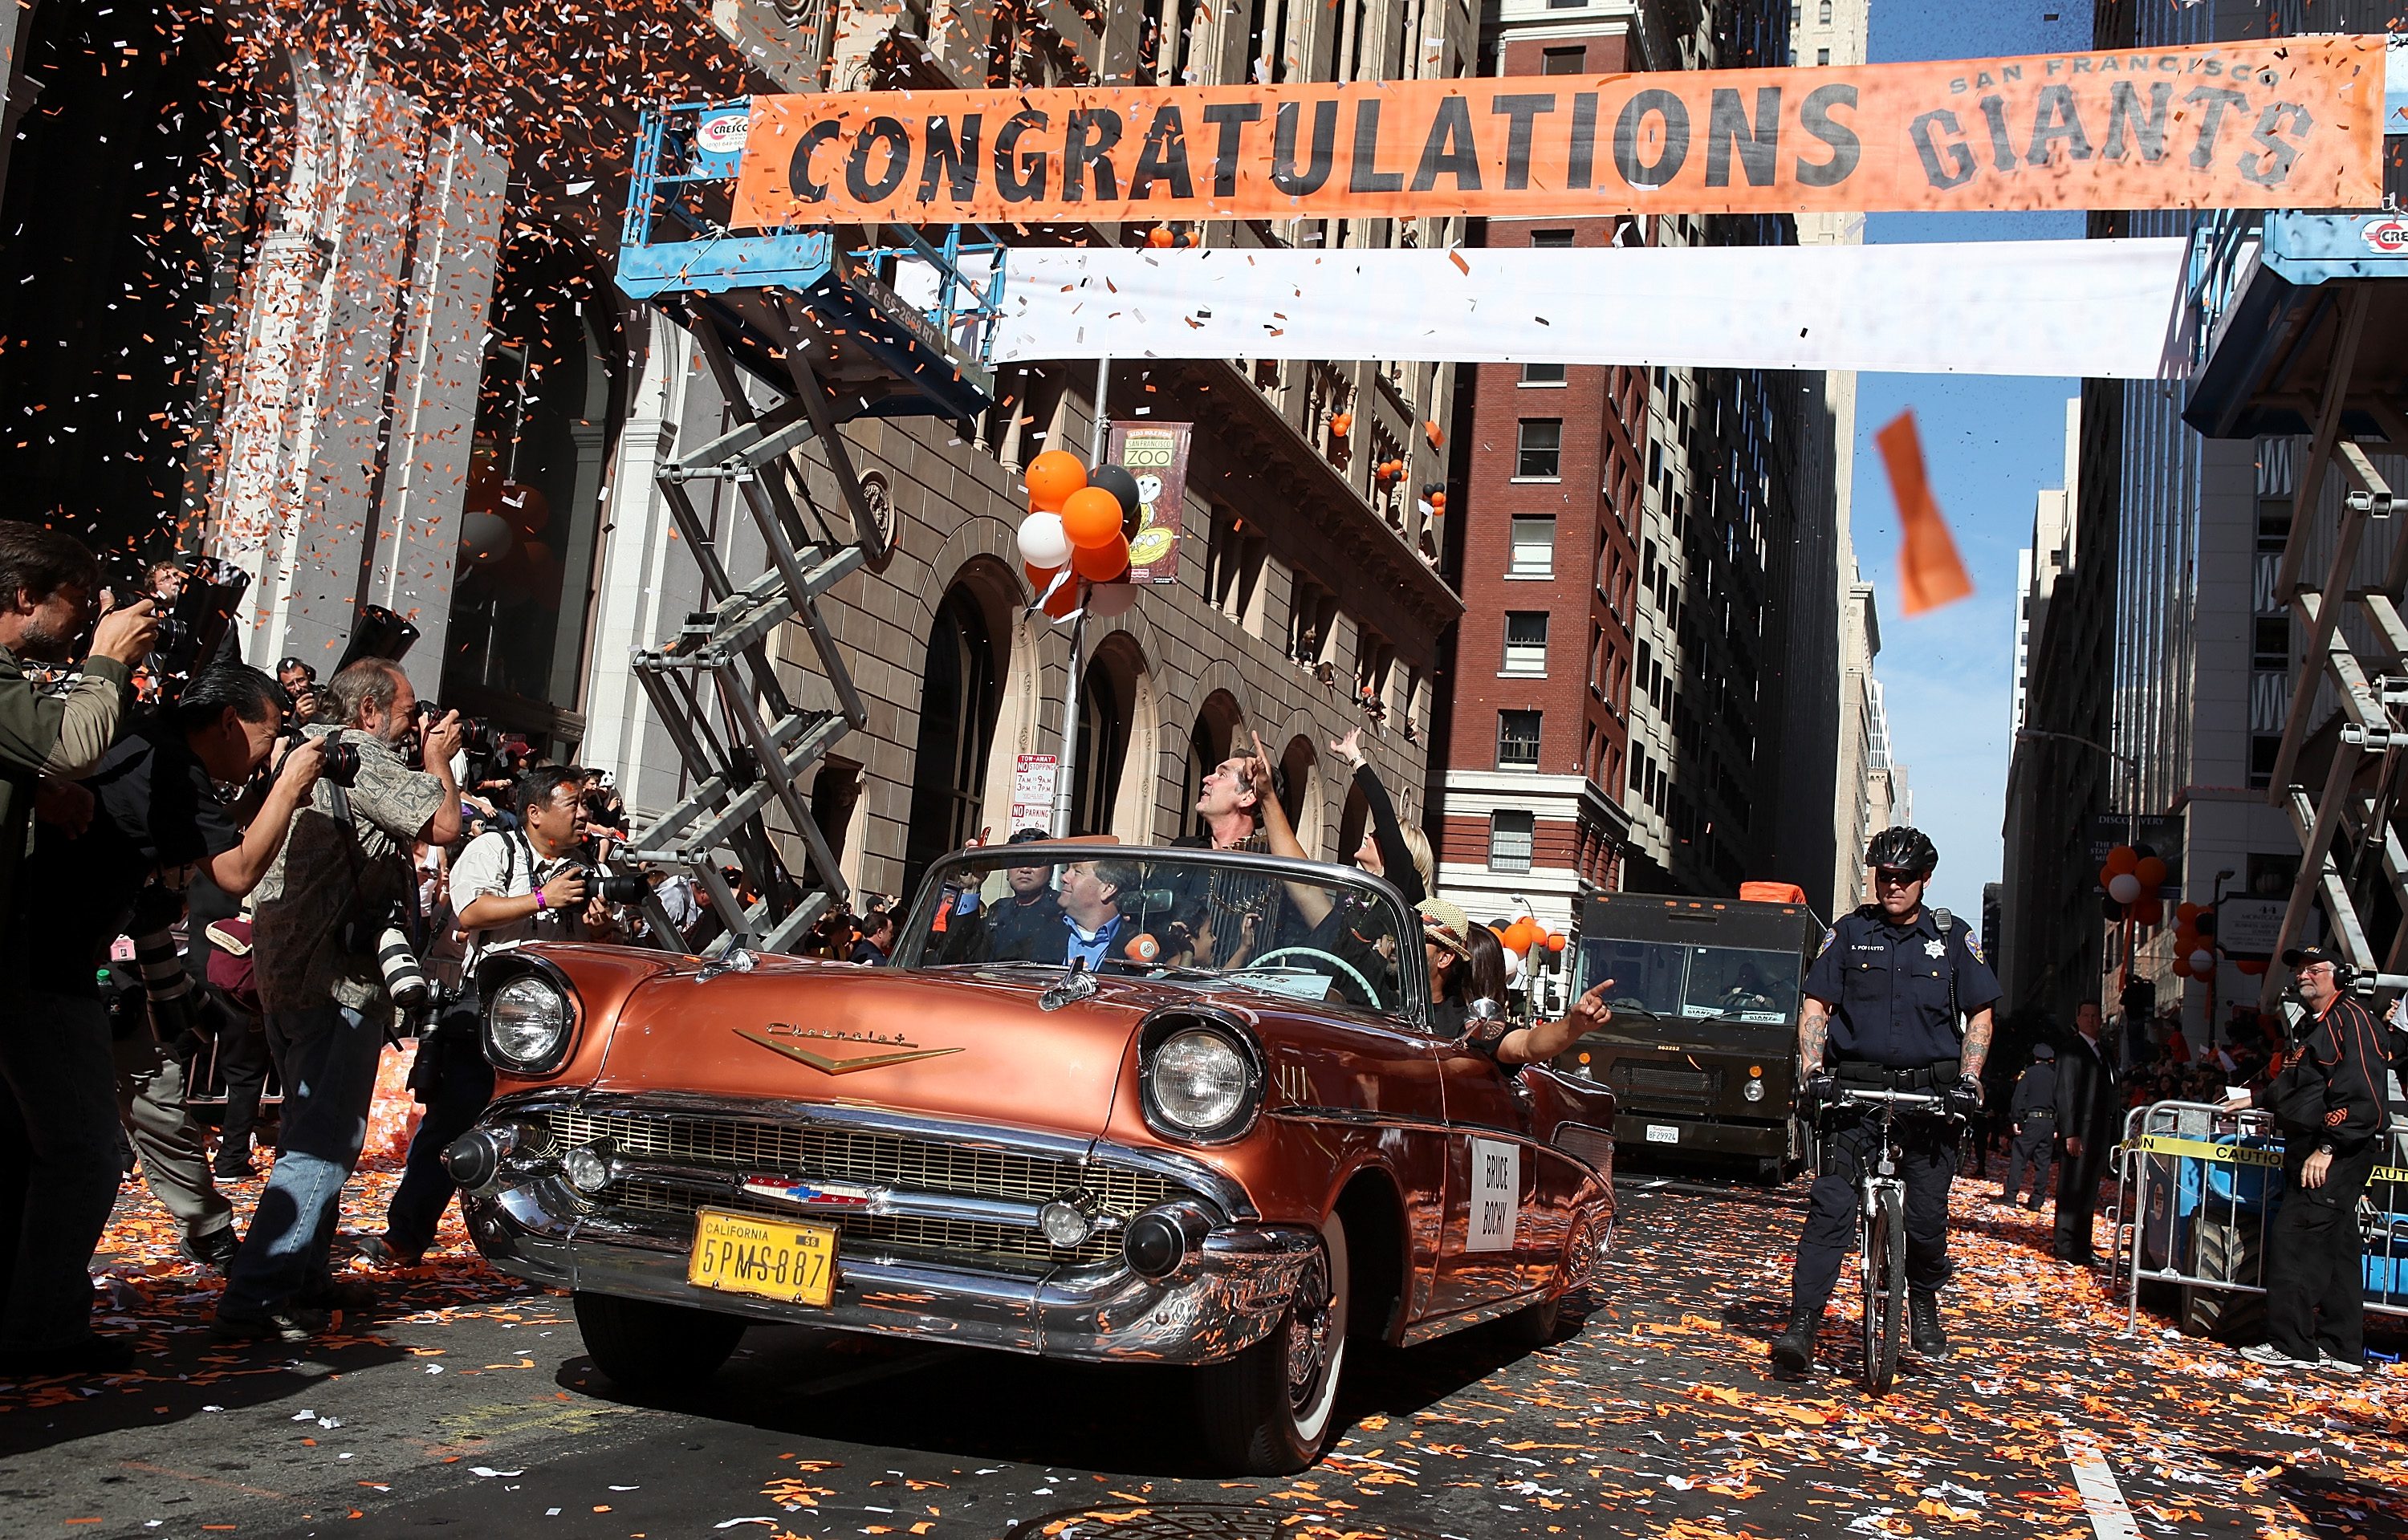 SAN FRANCISCO - NOVEMBER 03:  San Francisco Giants manager Bruce Bochy rides in a vintage car during the Giants' vicotry parade on November 3, 2010 in San Francisco, California. Thousands of Giants fans lined the streets of San Francisco to watch the San